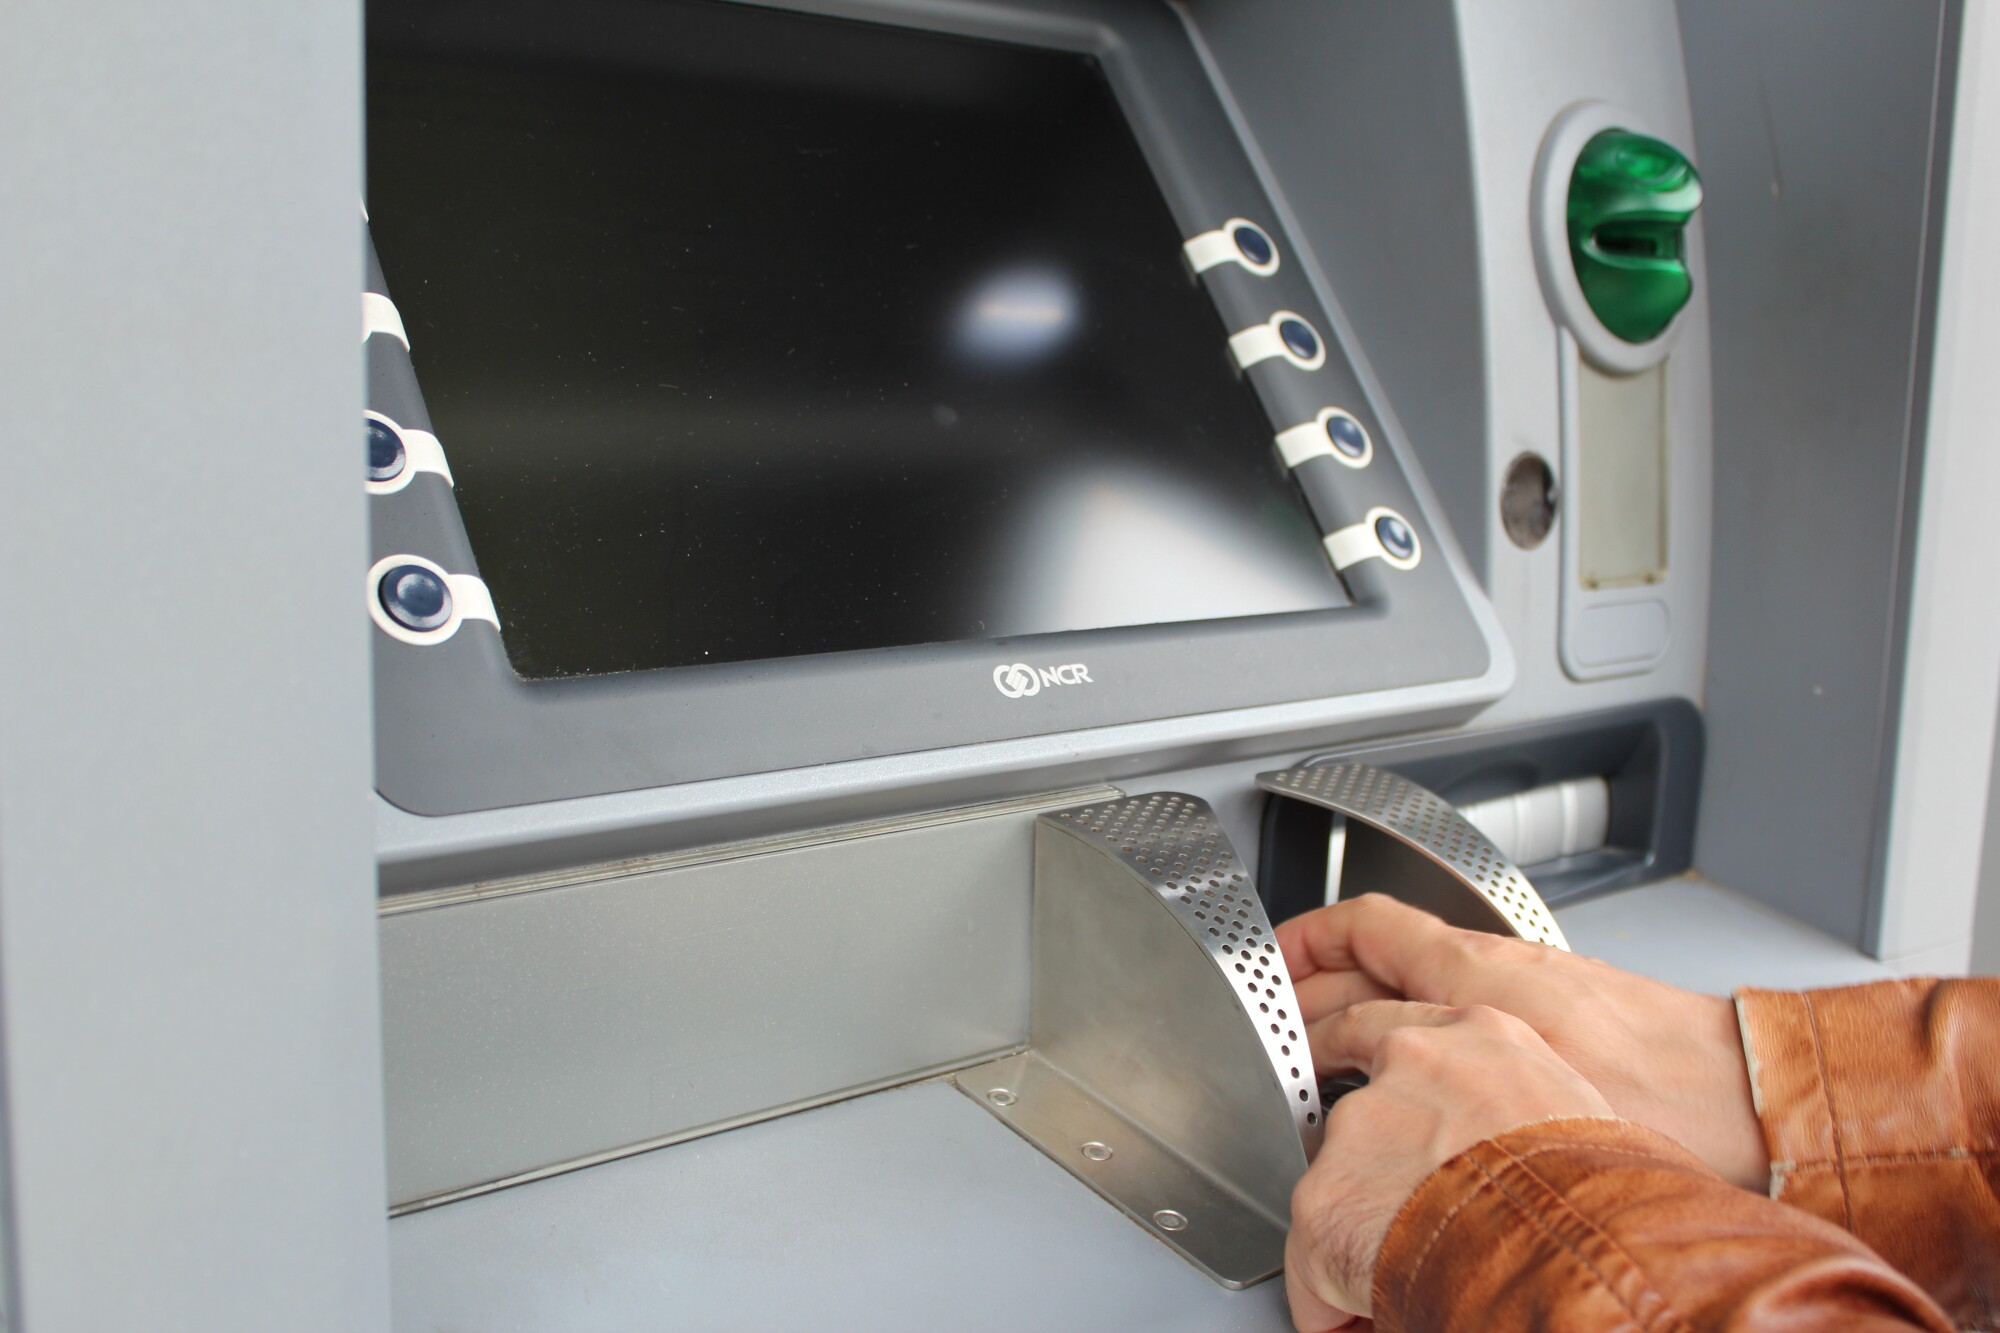 cashing a check at the atm